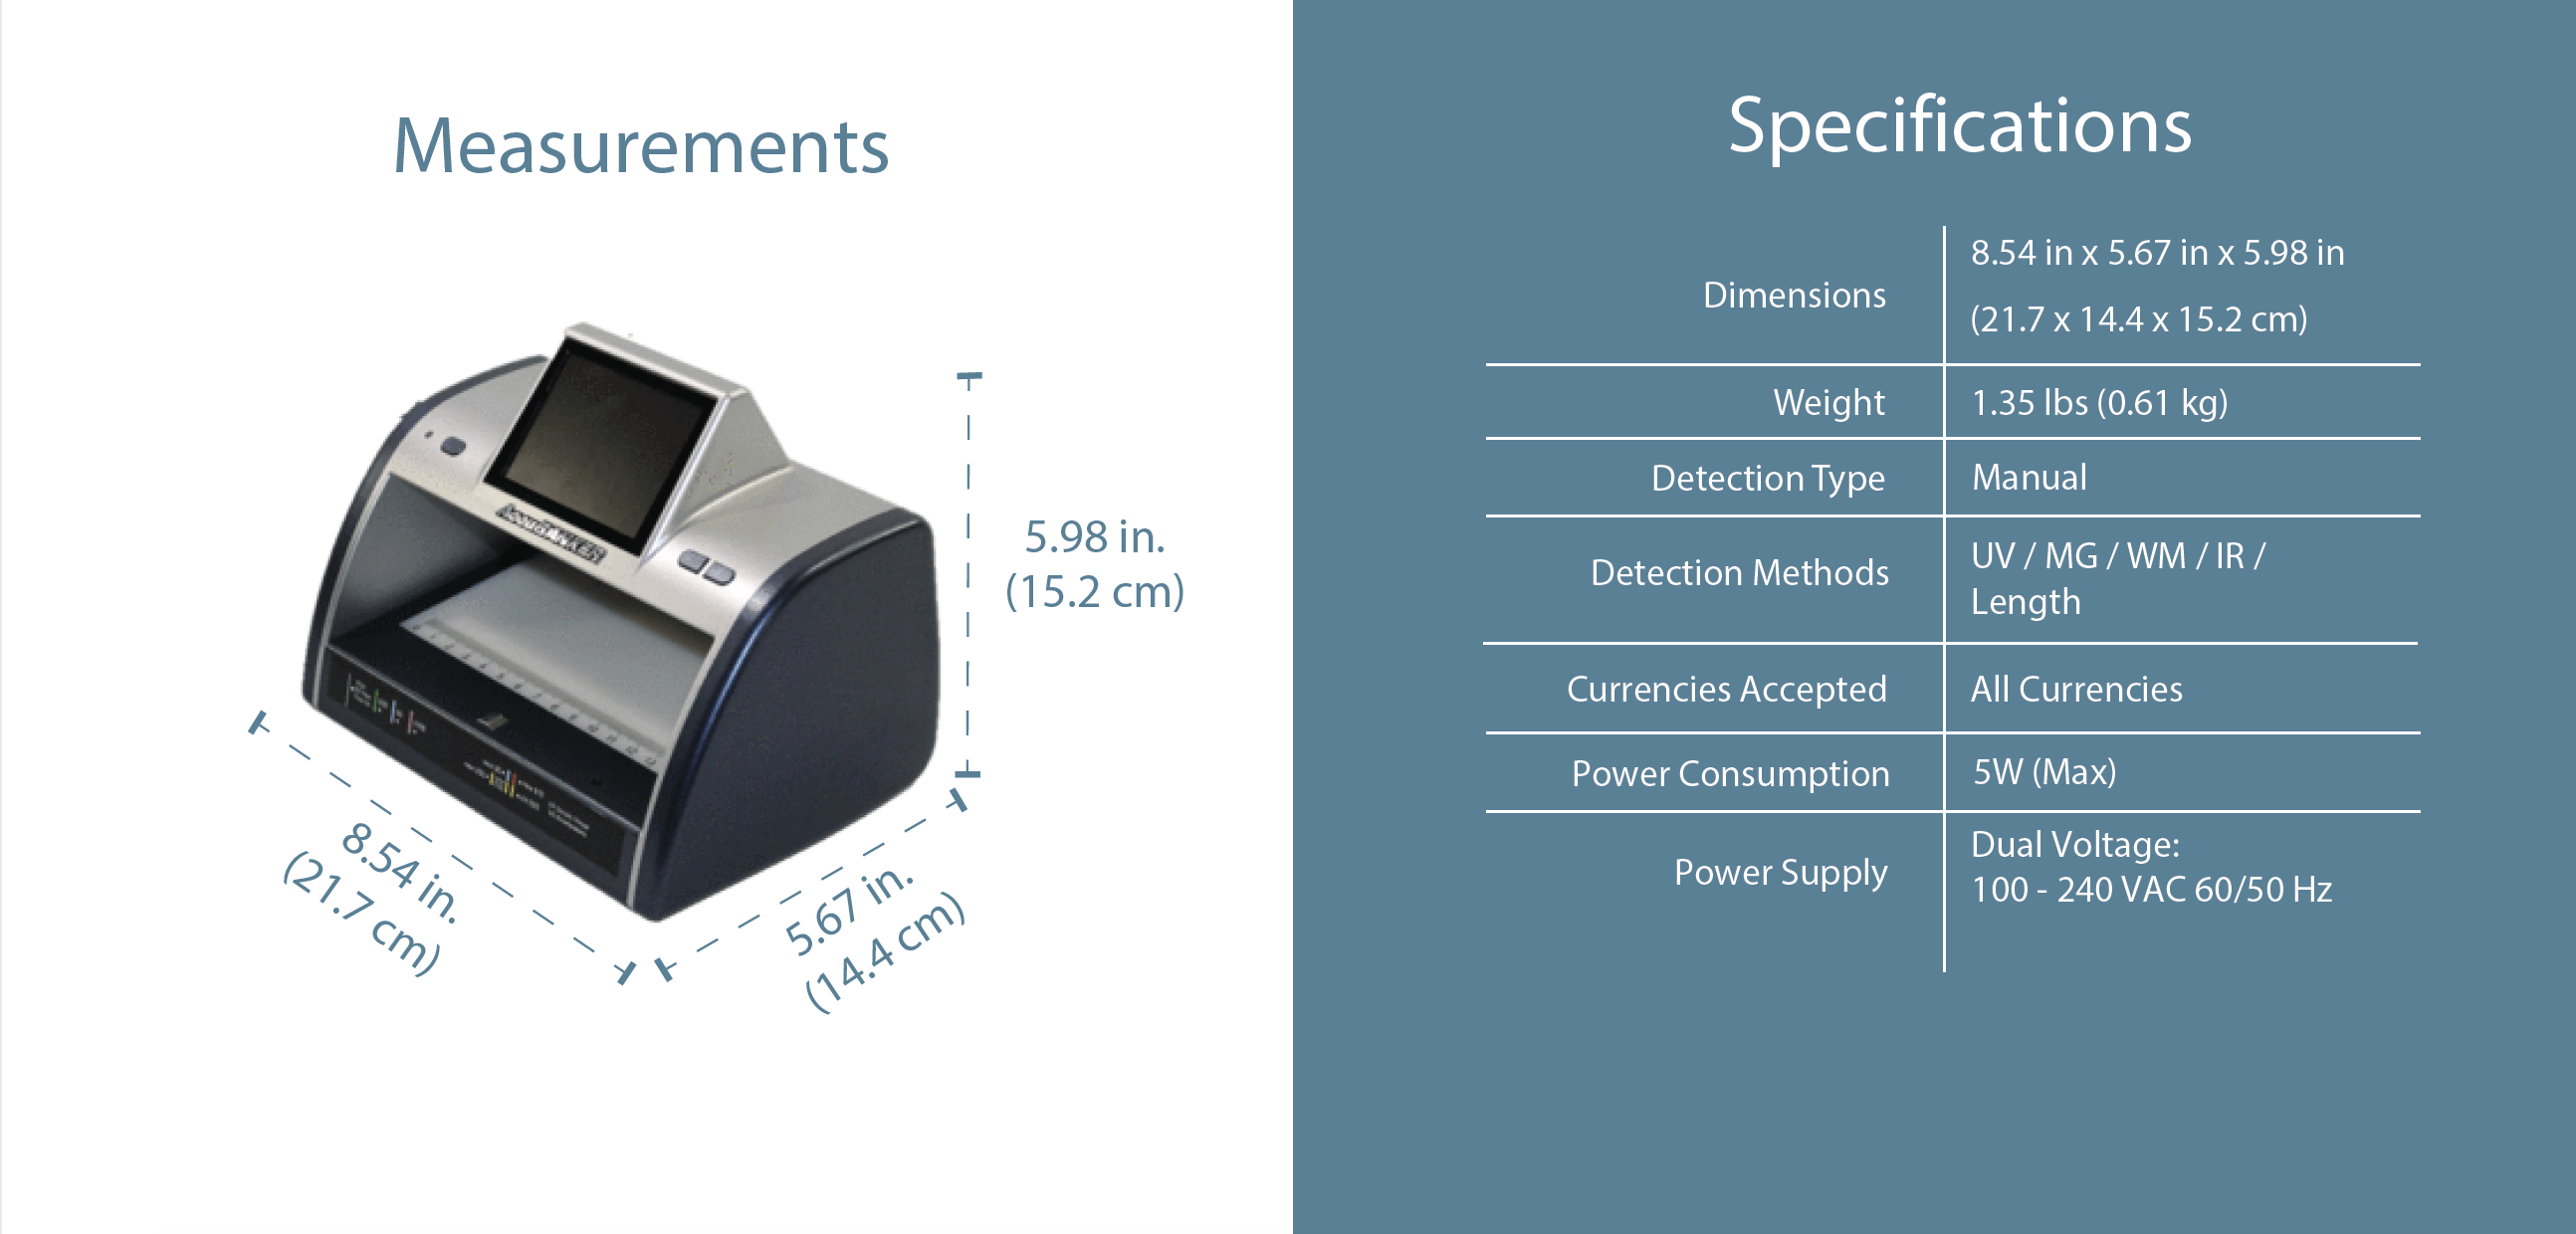 LED440 IRSpy Infrared Detector Features & Specifications